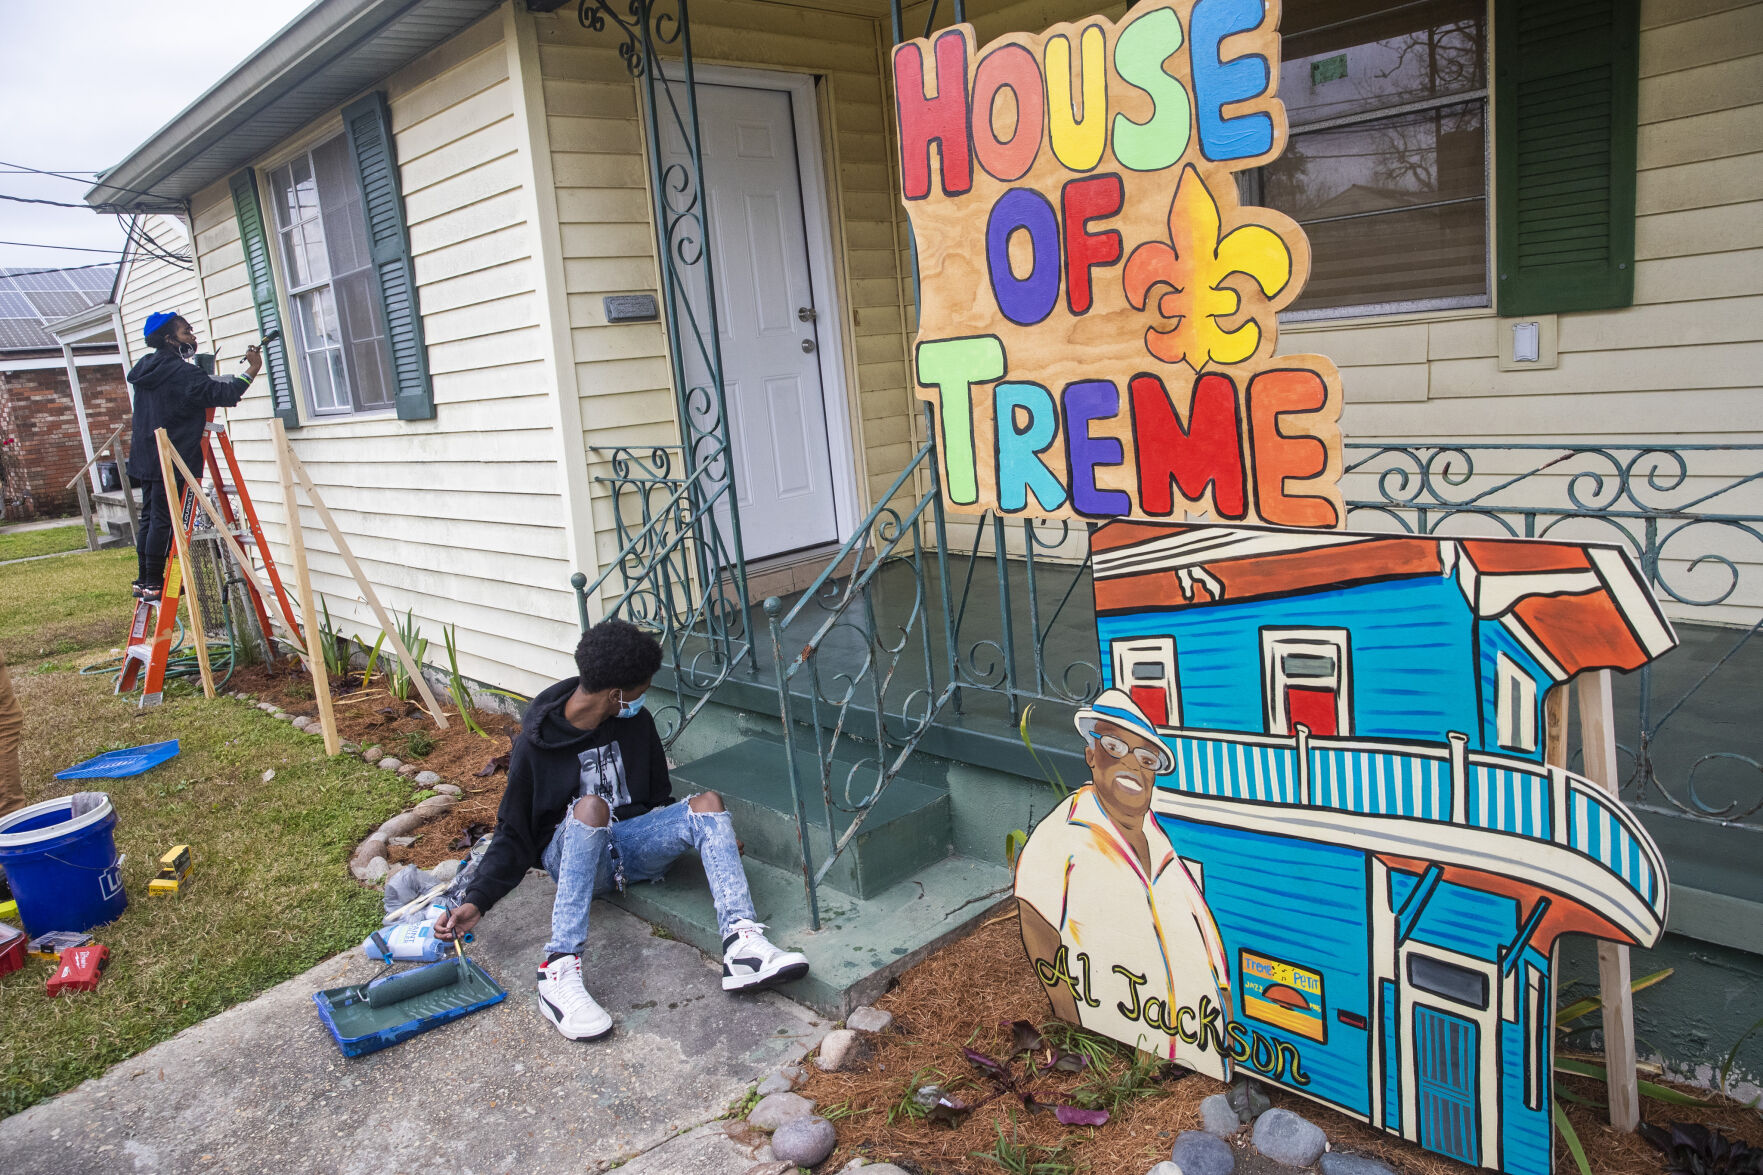 Baby Dolls, students join Carnival 'house float' movement with ode to Treme